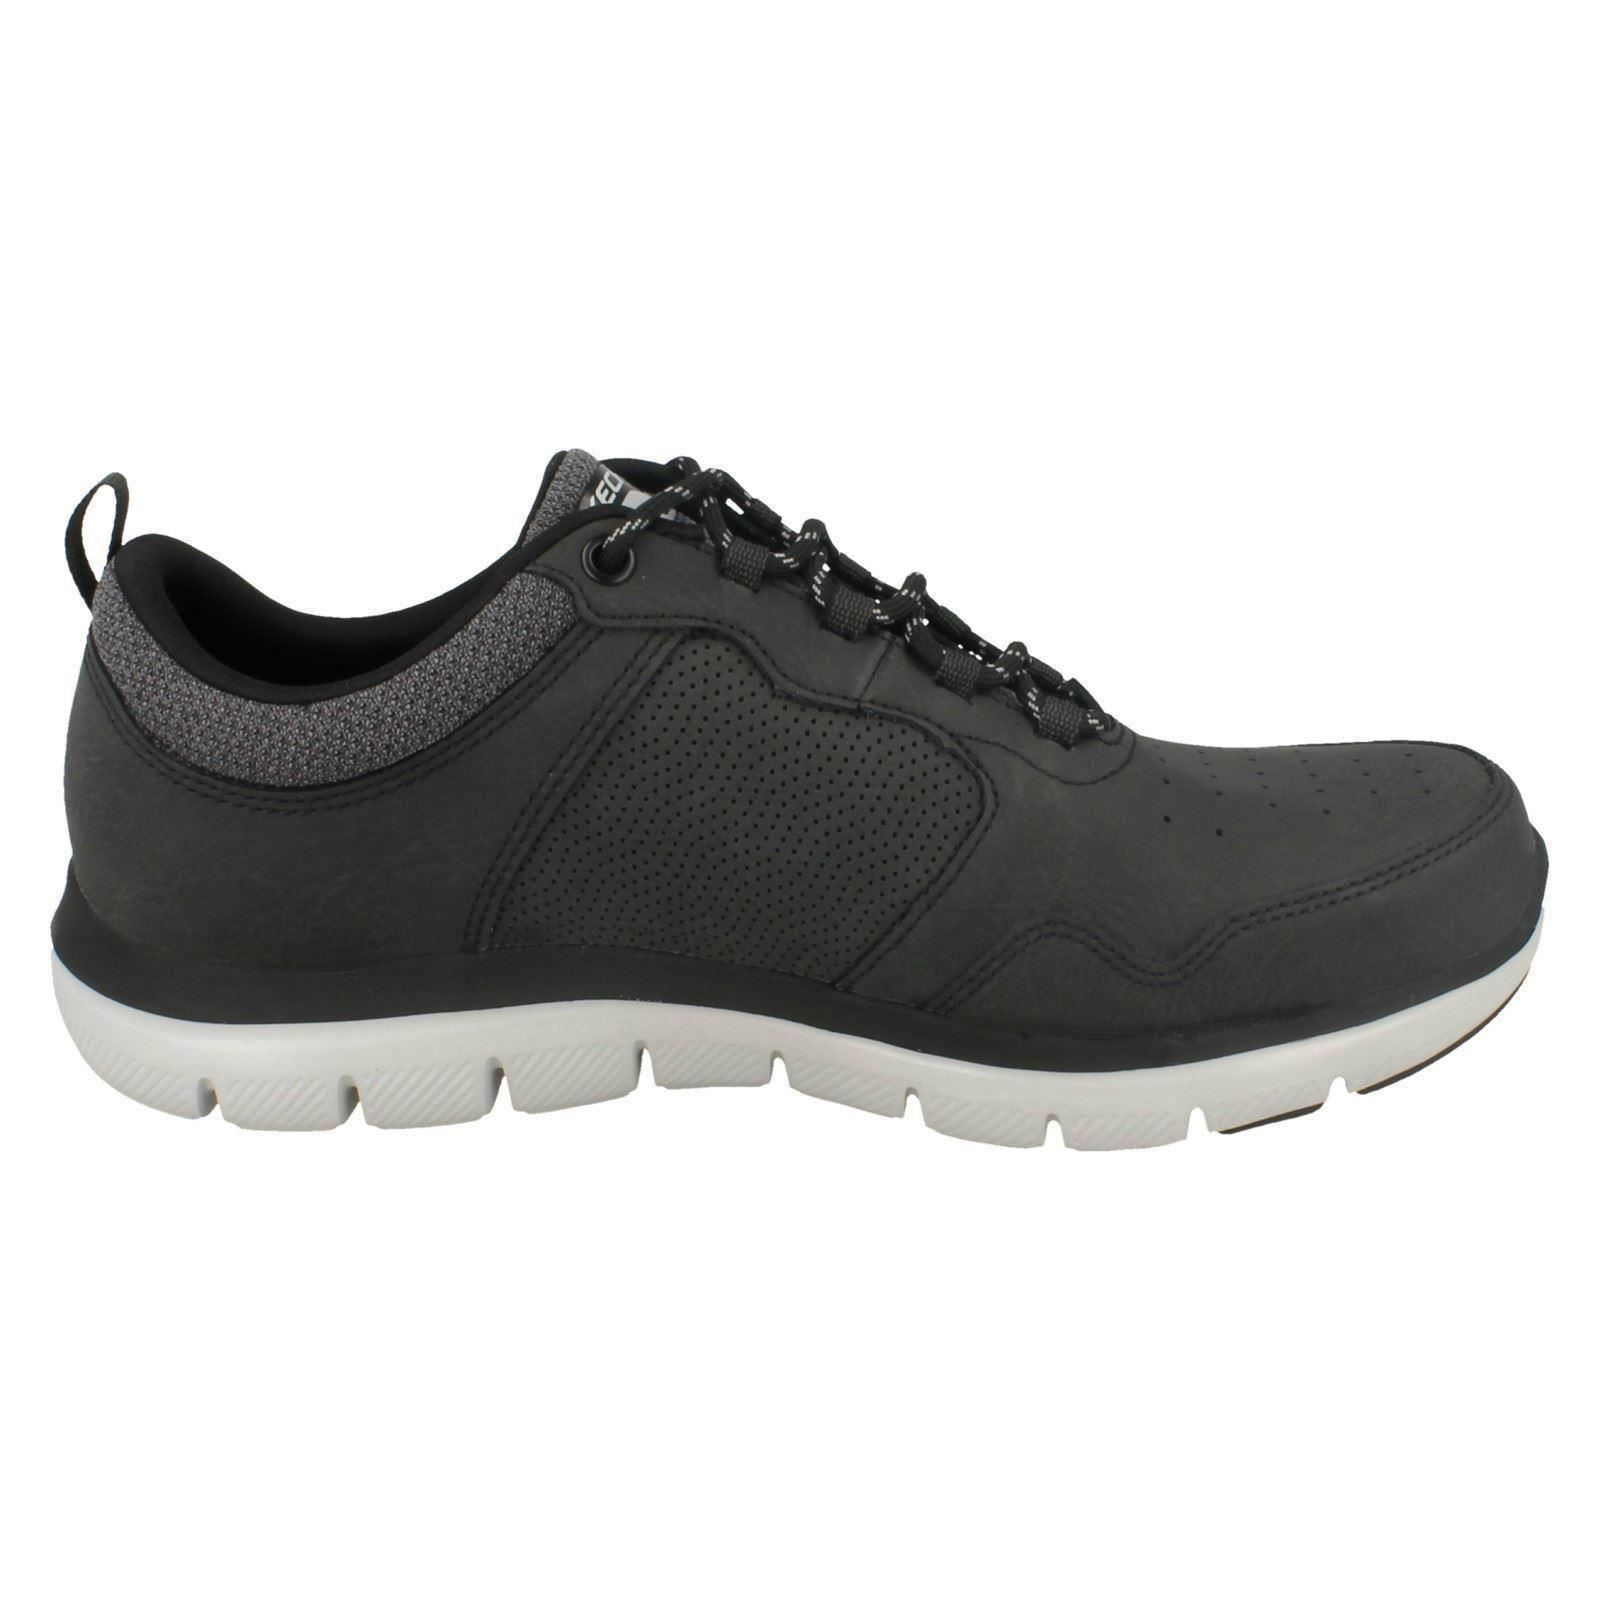 Uomo Skechers Lace Up Flex 52124 Advantage Leder Trainers Dali 52124 Flex 890ac2